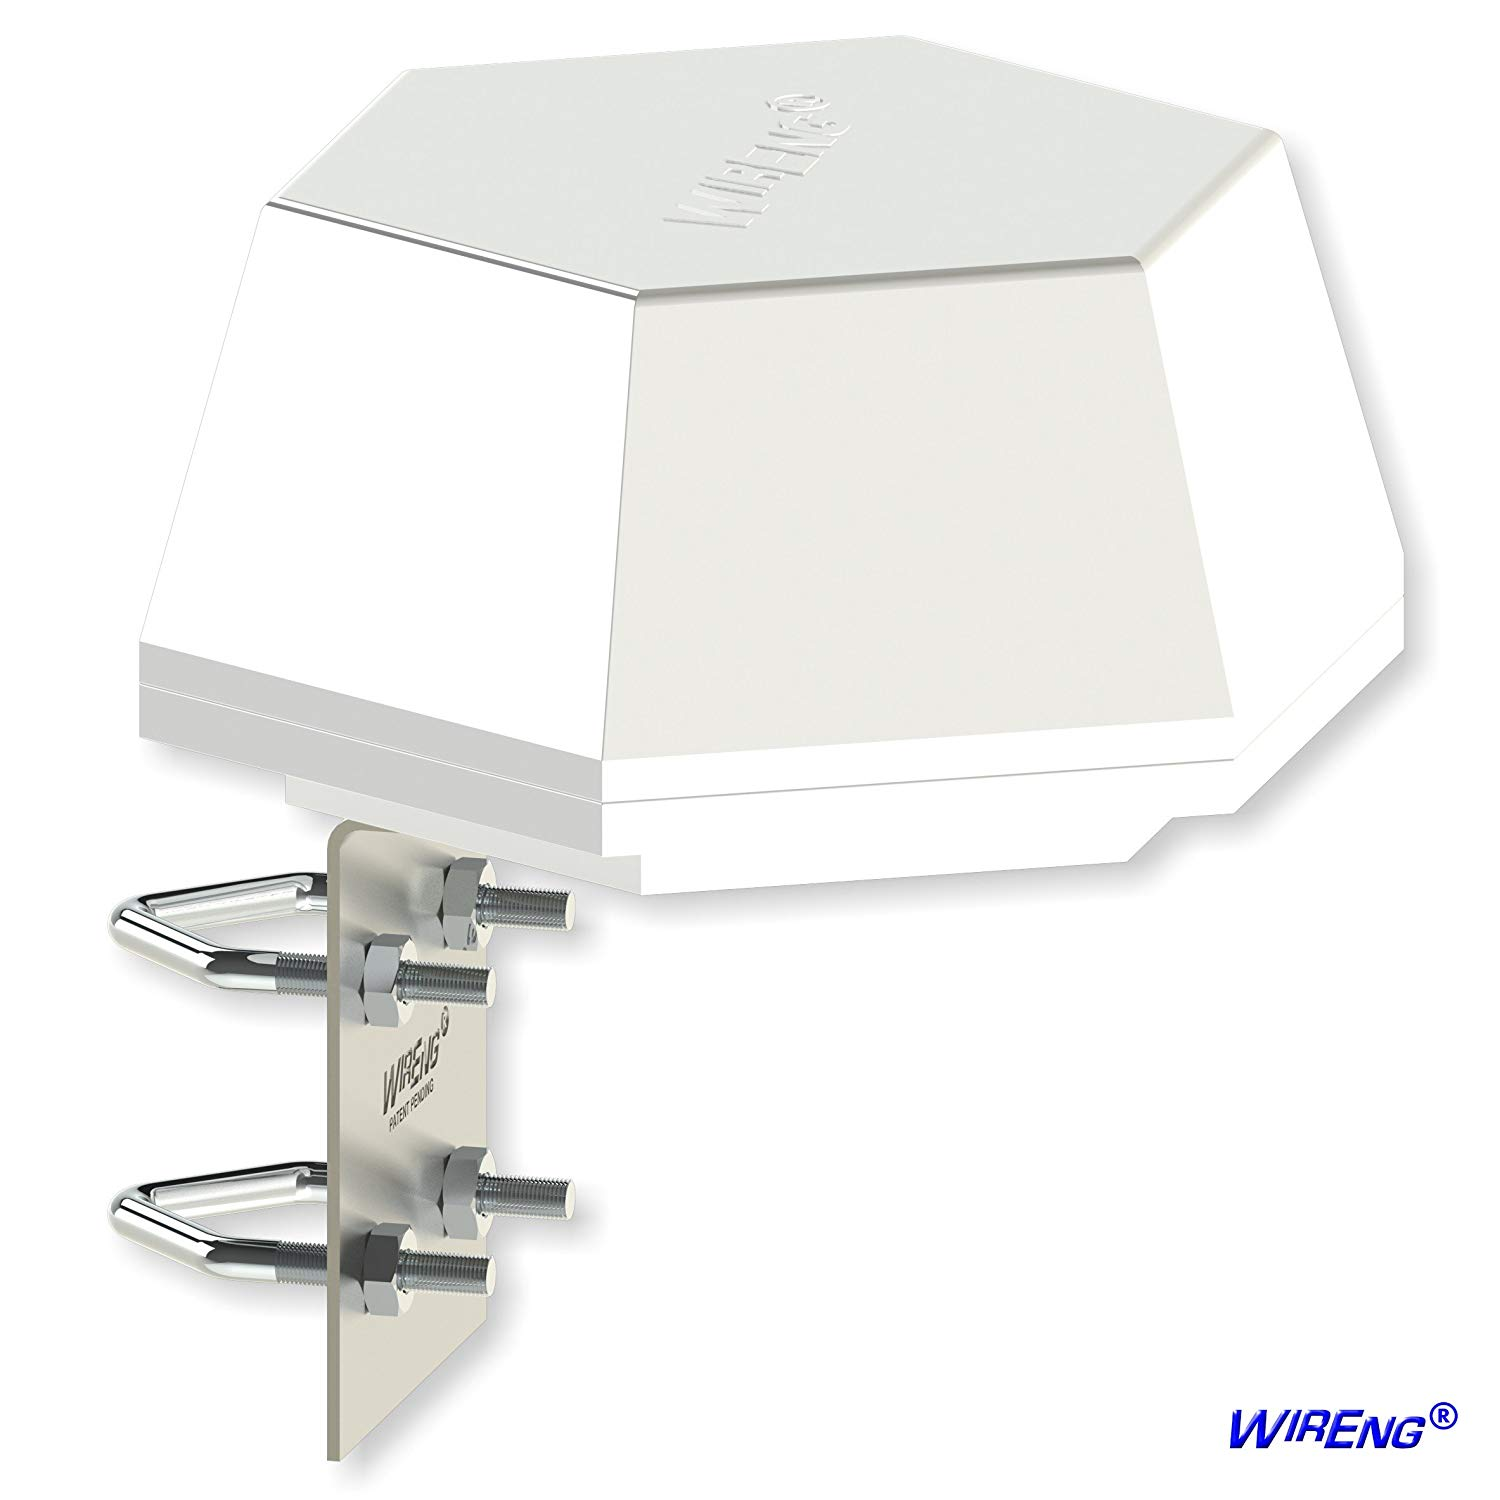 DefiAnt2-MIMO™ Antenna for BandRich Bandluxe R500 RV/Vehicle/Truck/Van/Boat/Transit True MIMO Omni ±45° Dual - Industrial Grade